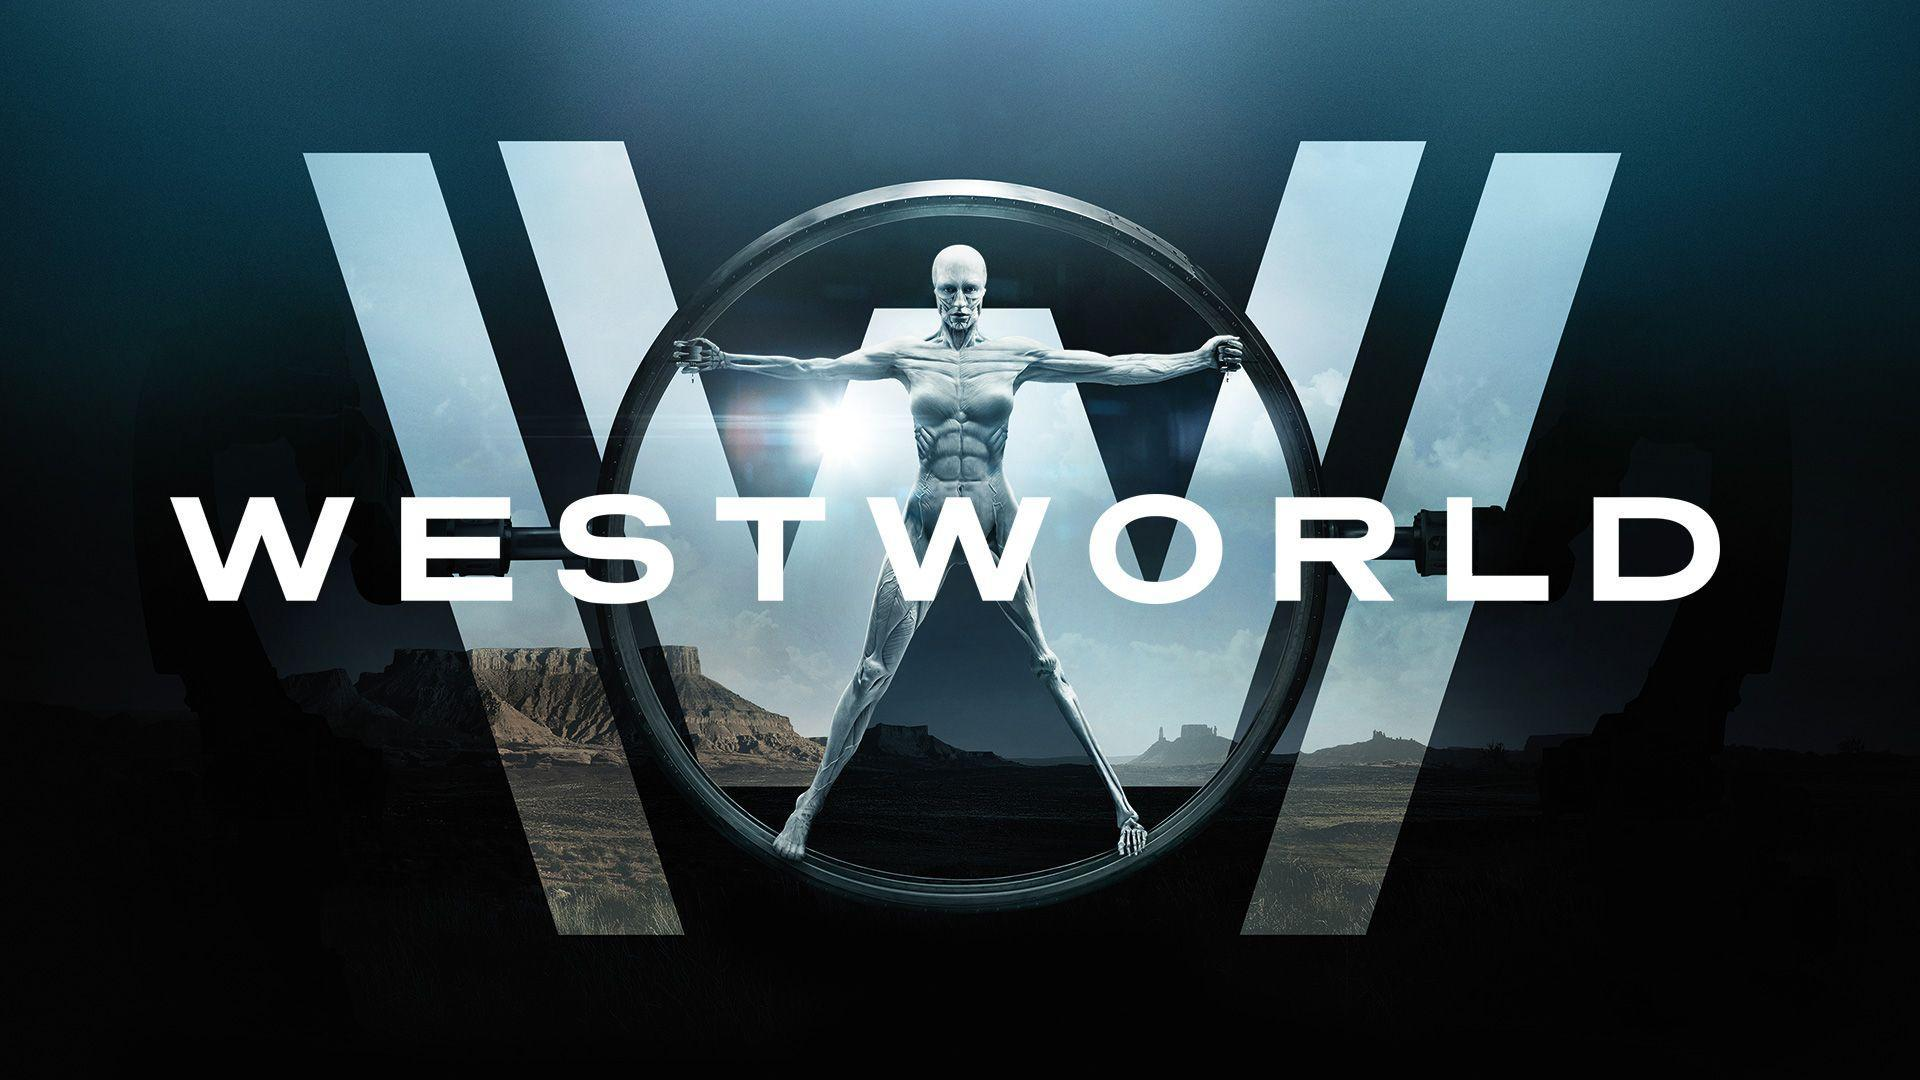 Westworld Wallpapers Wallpaper Cave